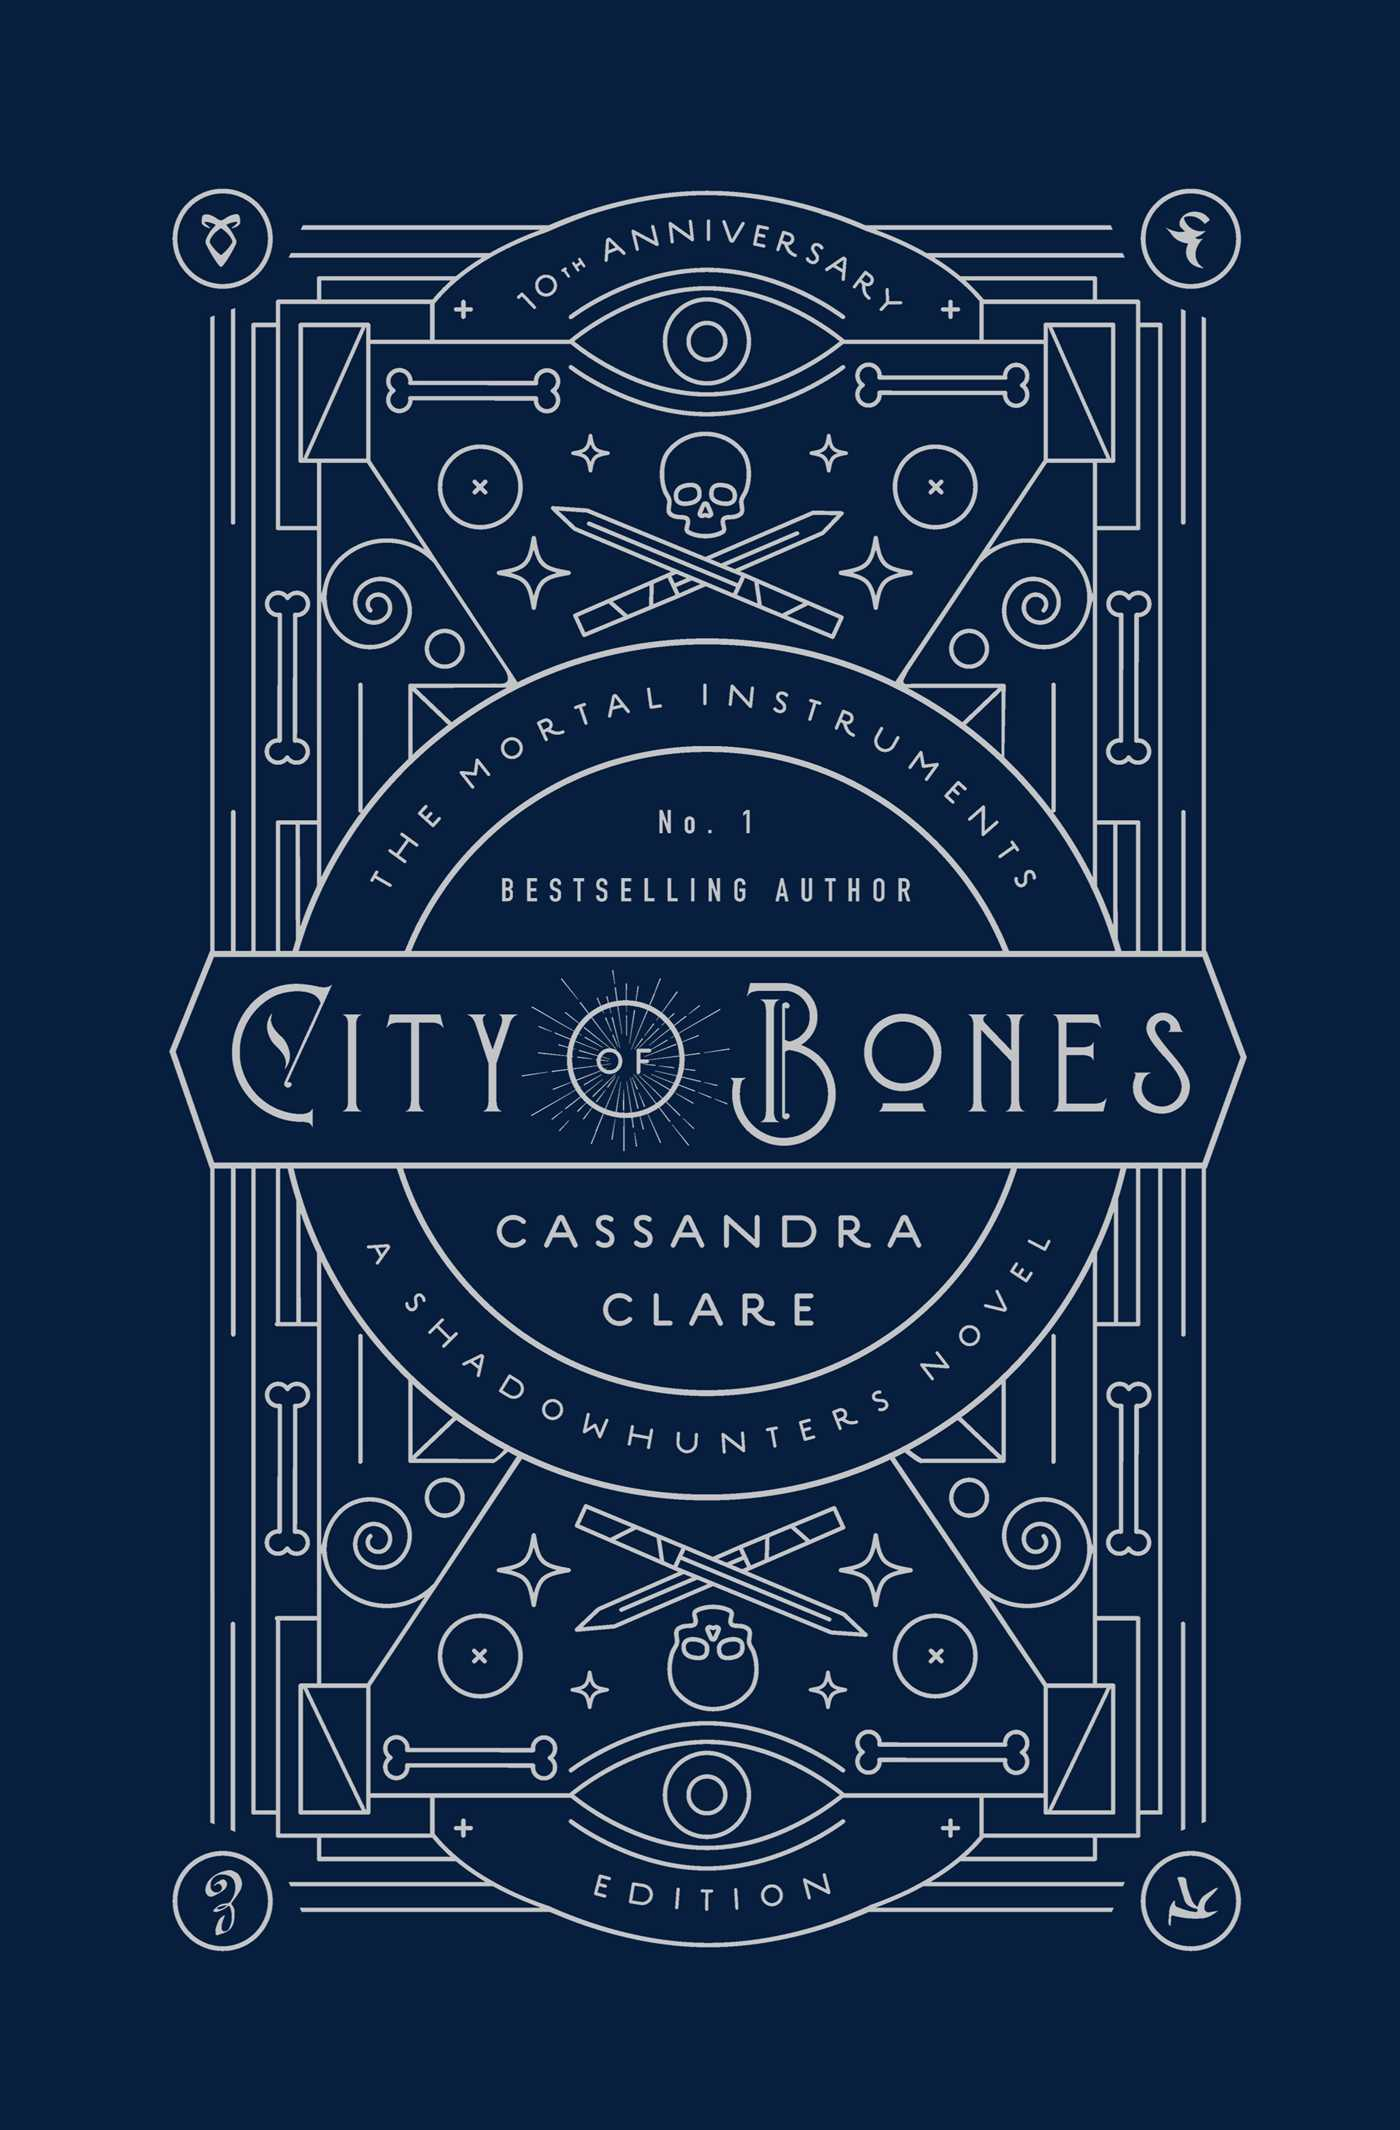 City of bones 9781534406254 hr